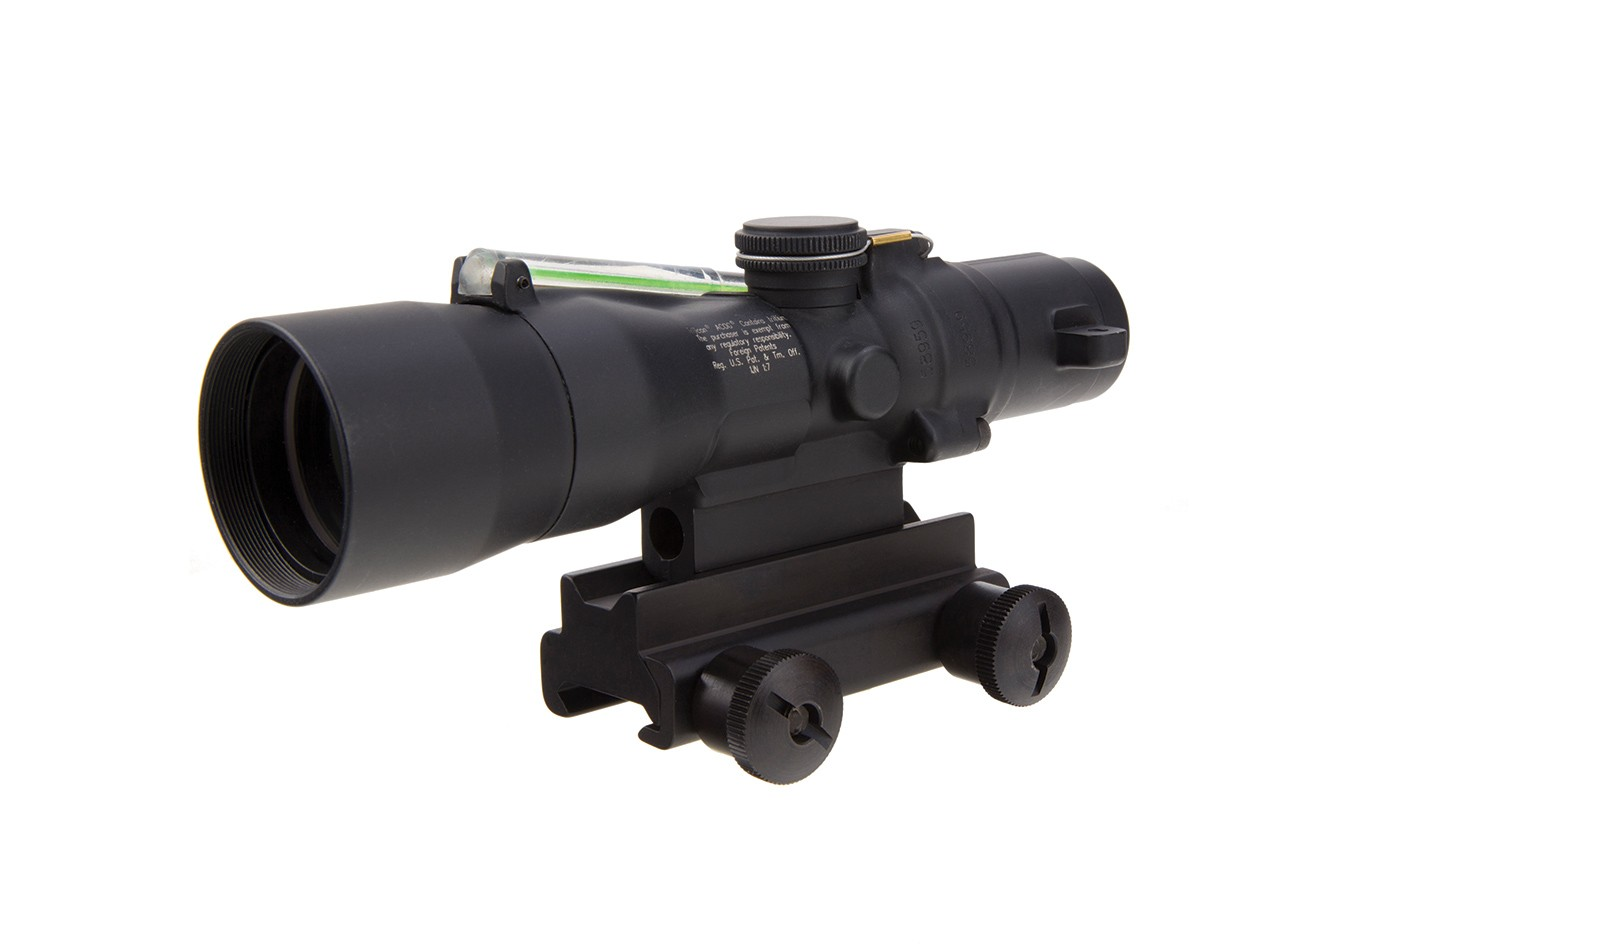 Trijicon ACOG® BAC 3x30 Riflescope - 300 BLK 115 / 220 Grain